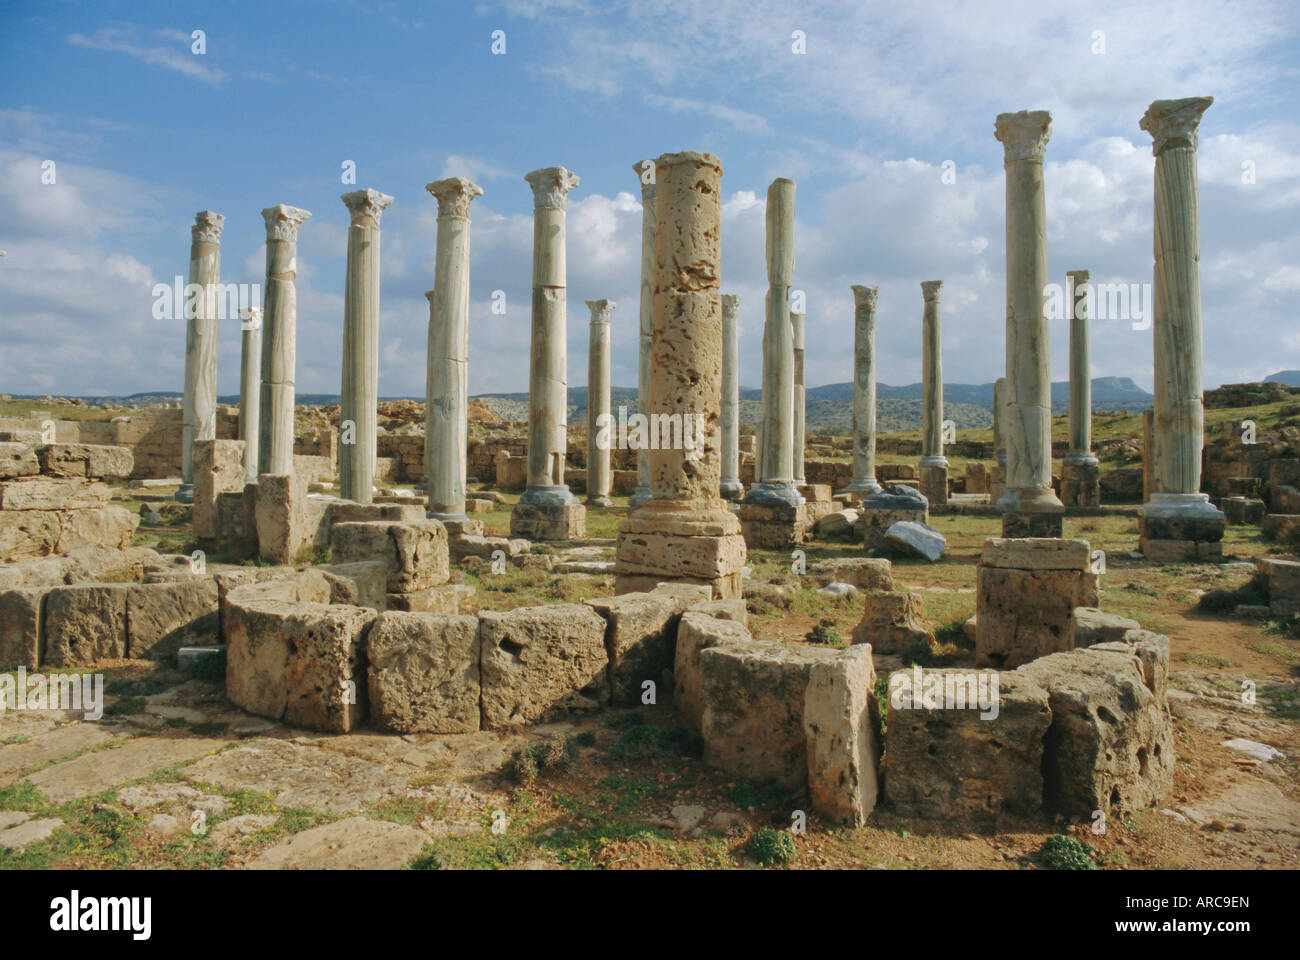 The ancient Greek city of Appolonia, Libya, North Africa - Stock Image